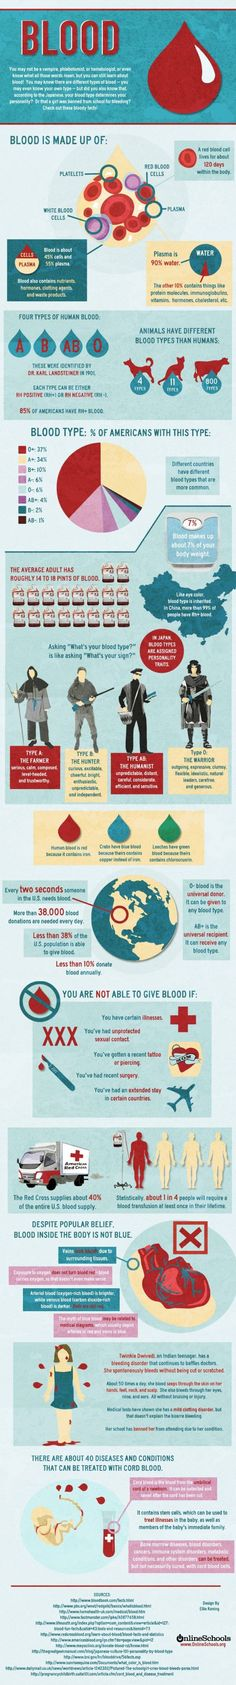 Most people know the four blood types, A, B, AB, and O but lesser known are the Japanese personality traits associated with each blood type. (Hmm ???) This infographic contains blood related facts such as blood donation requirements, diseases requiring blood donations, and more.